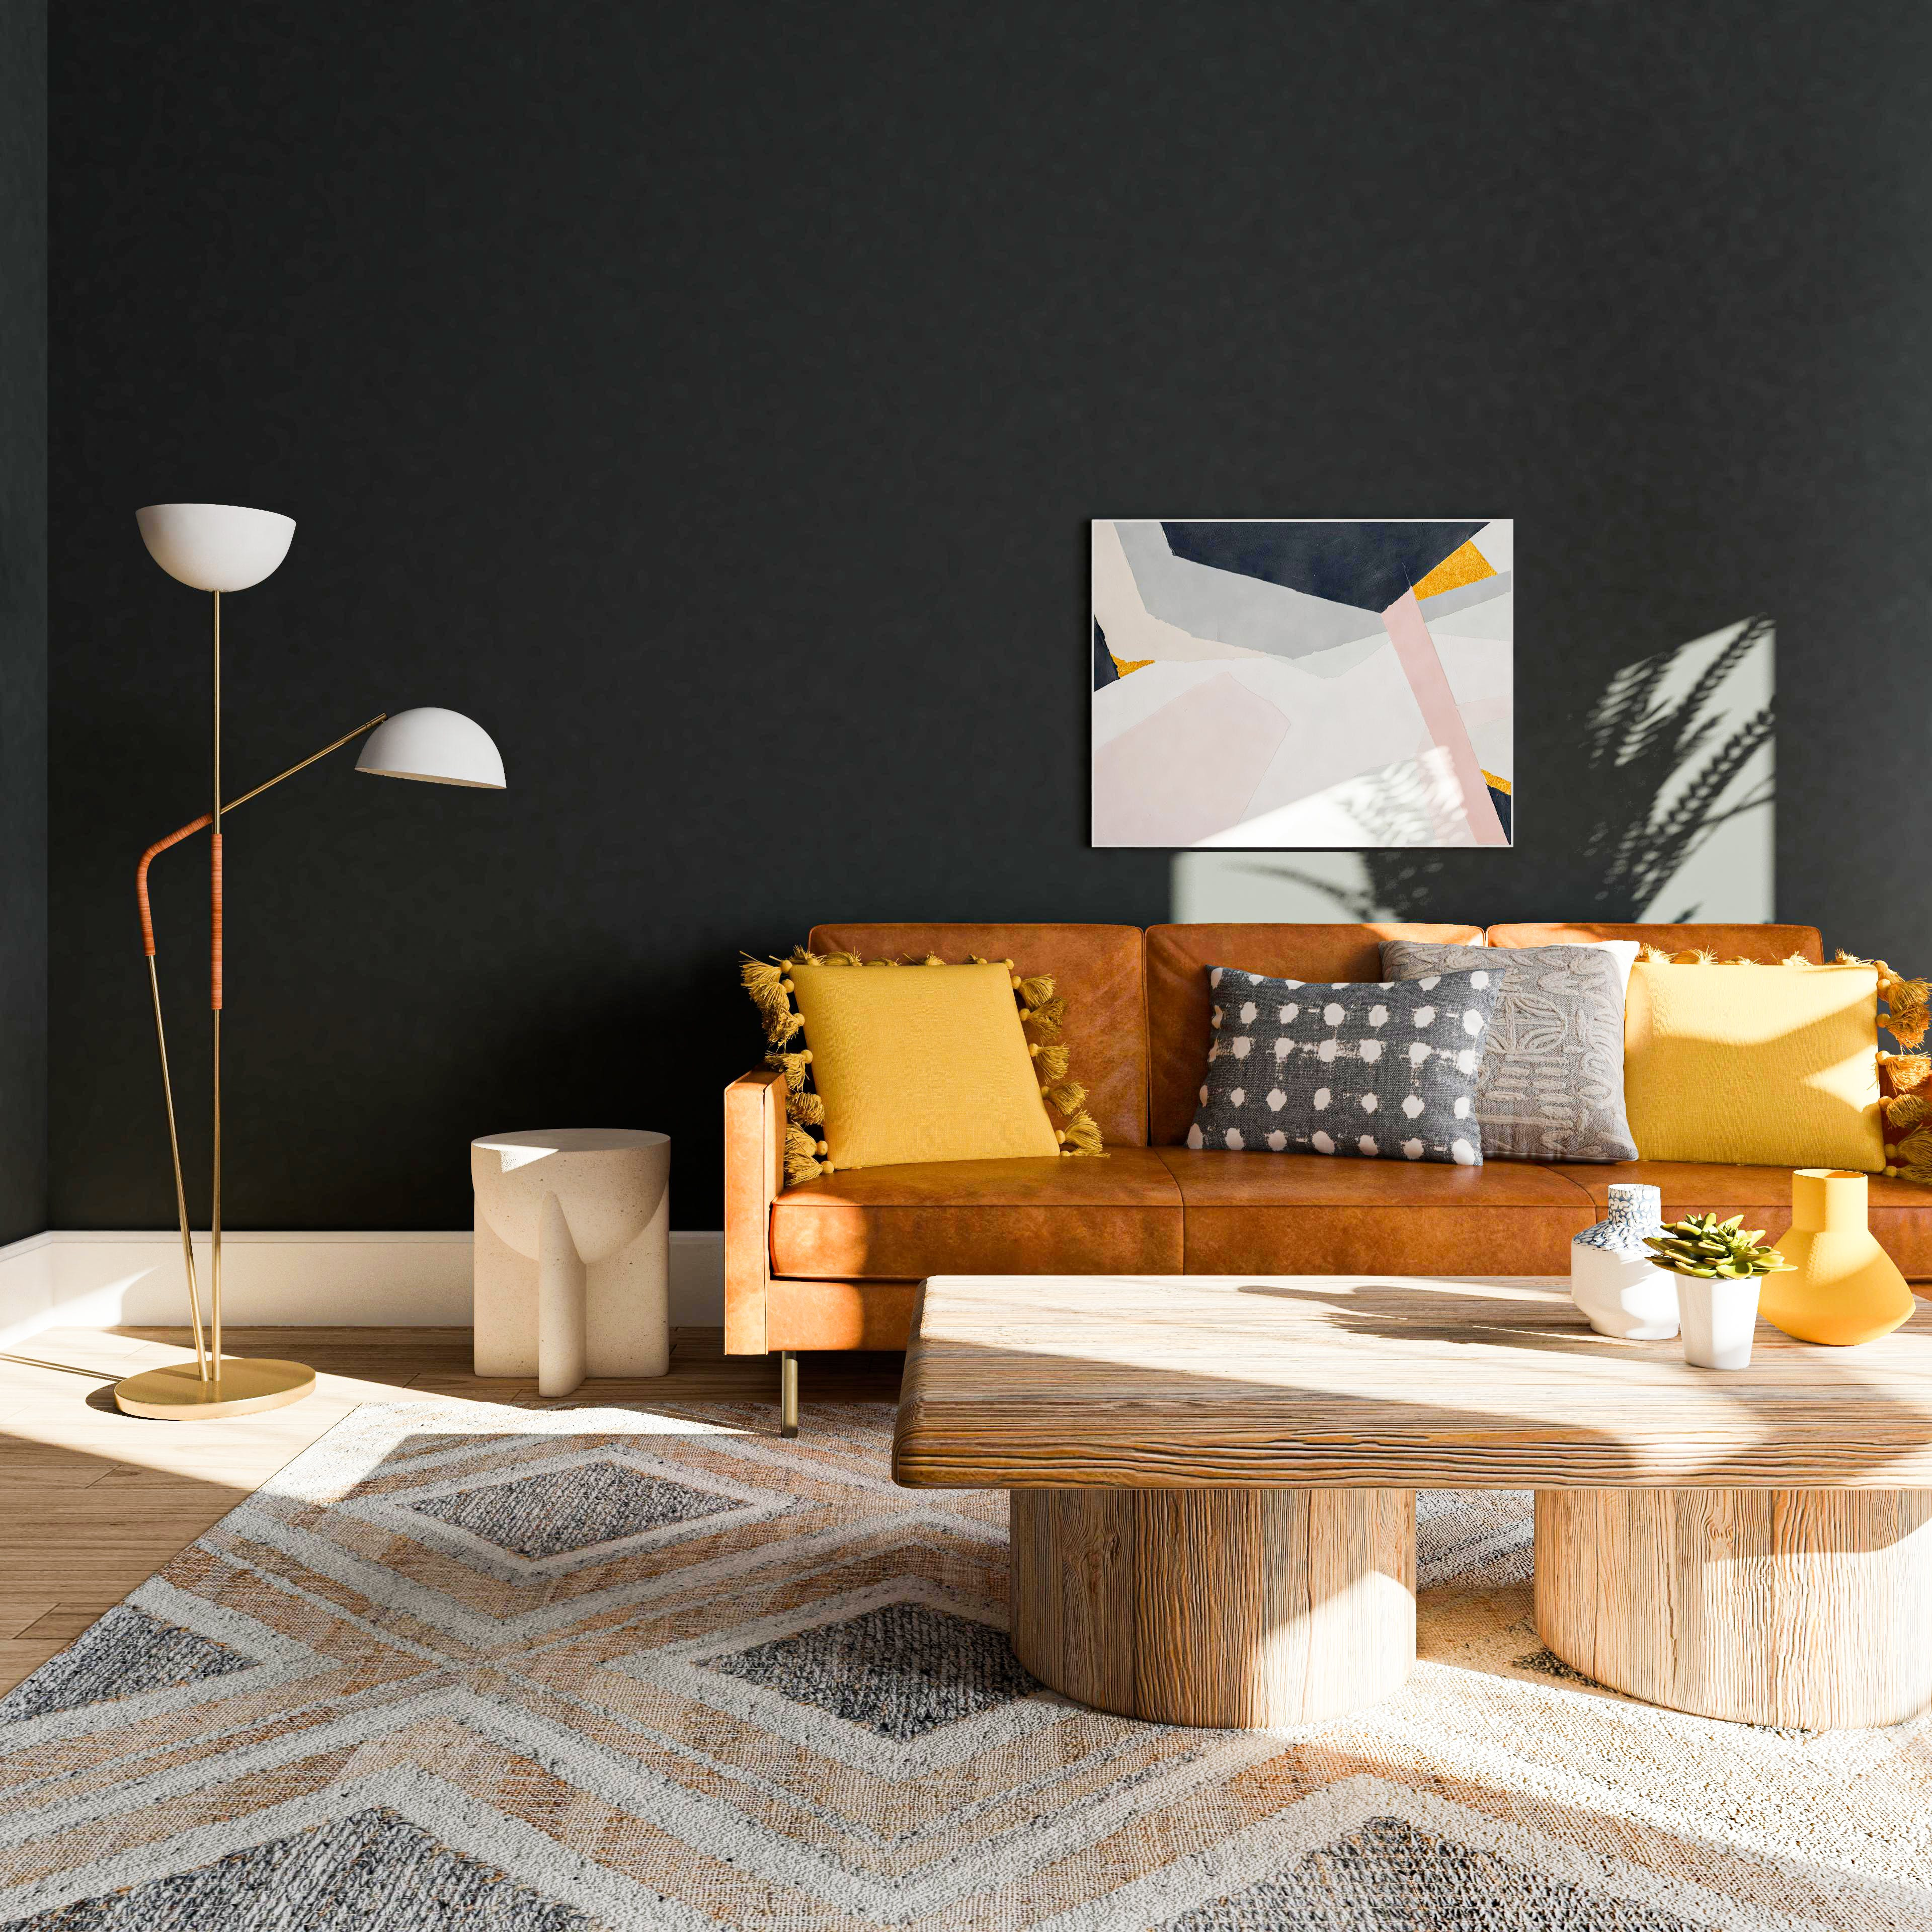 Geometric Patterns + Natural Materials= the Perfect Pairing